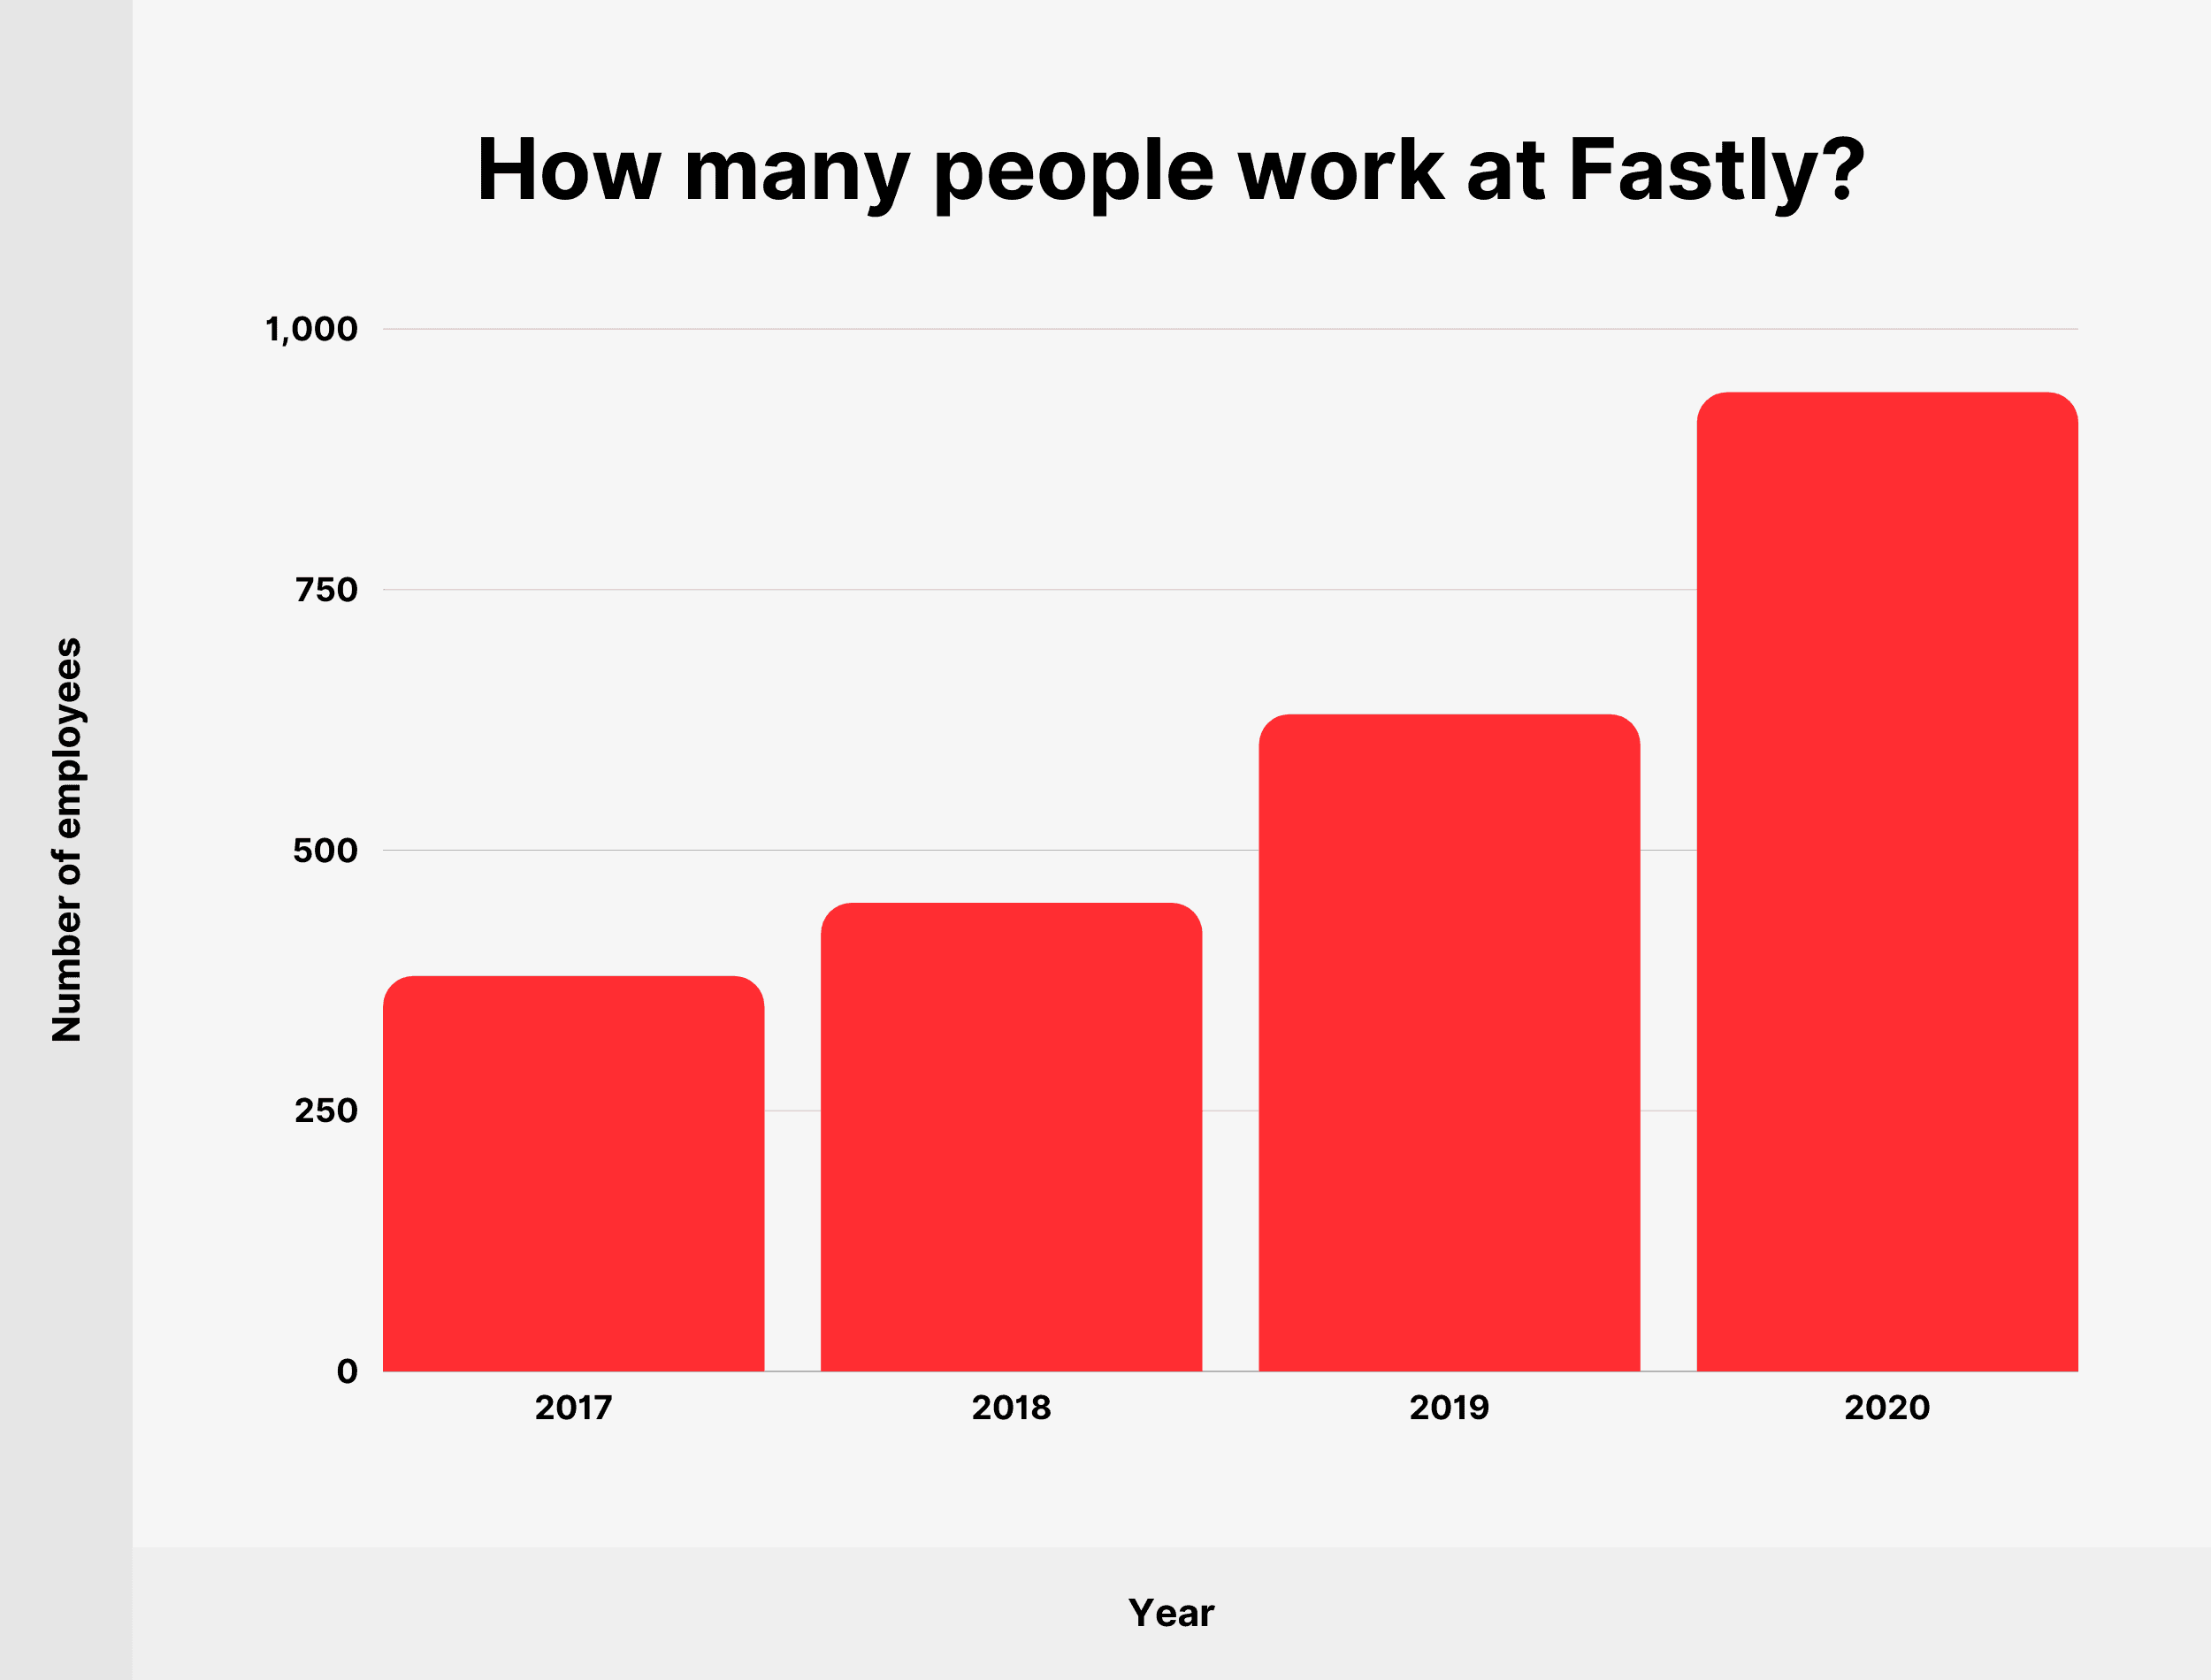 How many people work at Fastly?